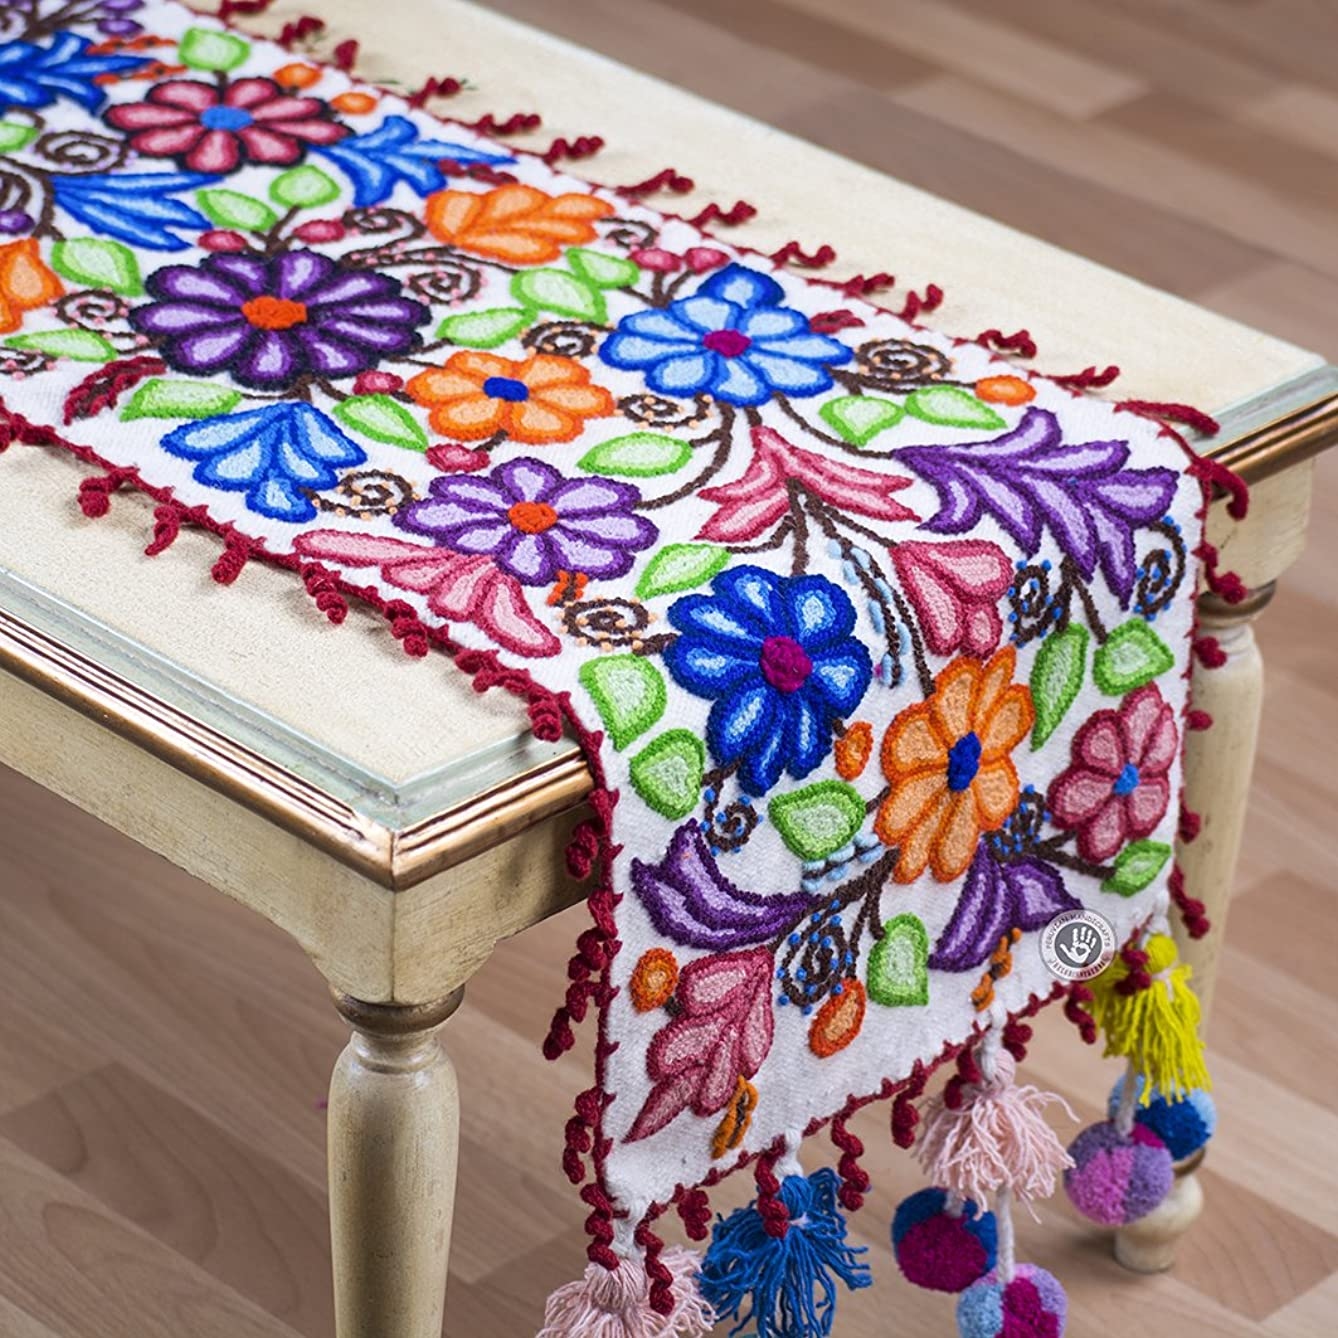 Hand Embroidered table runner patterns, Handmade Table center piece, Peruvian wide table Decor from Peru, White wool Floral Table runner